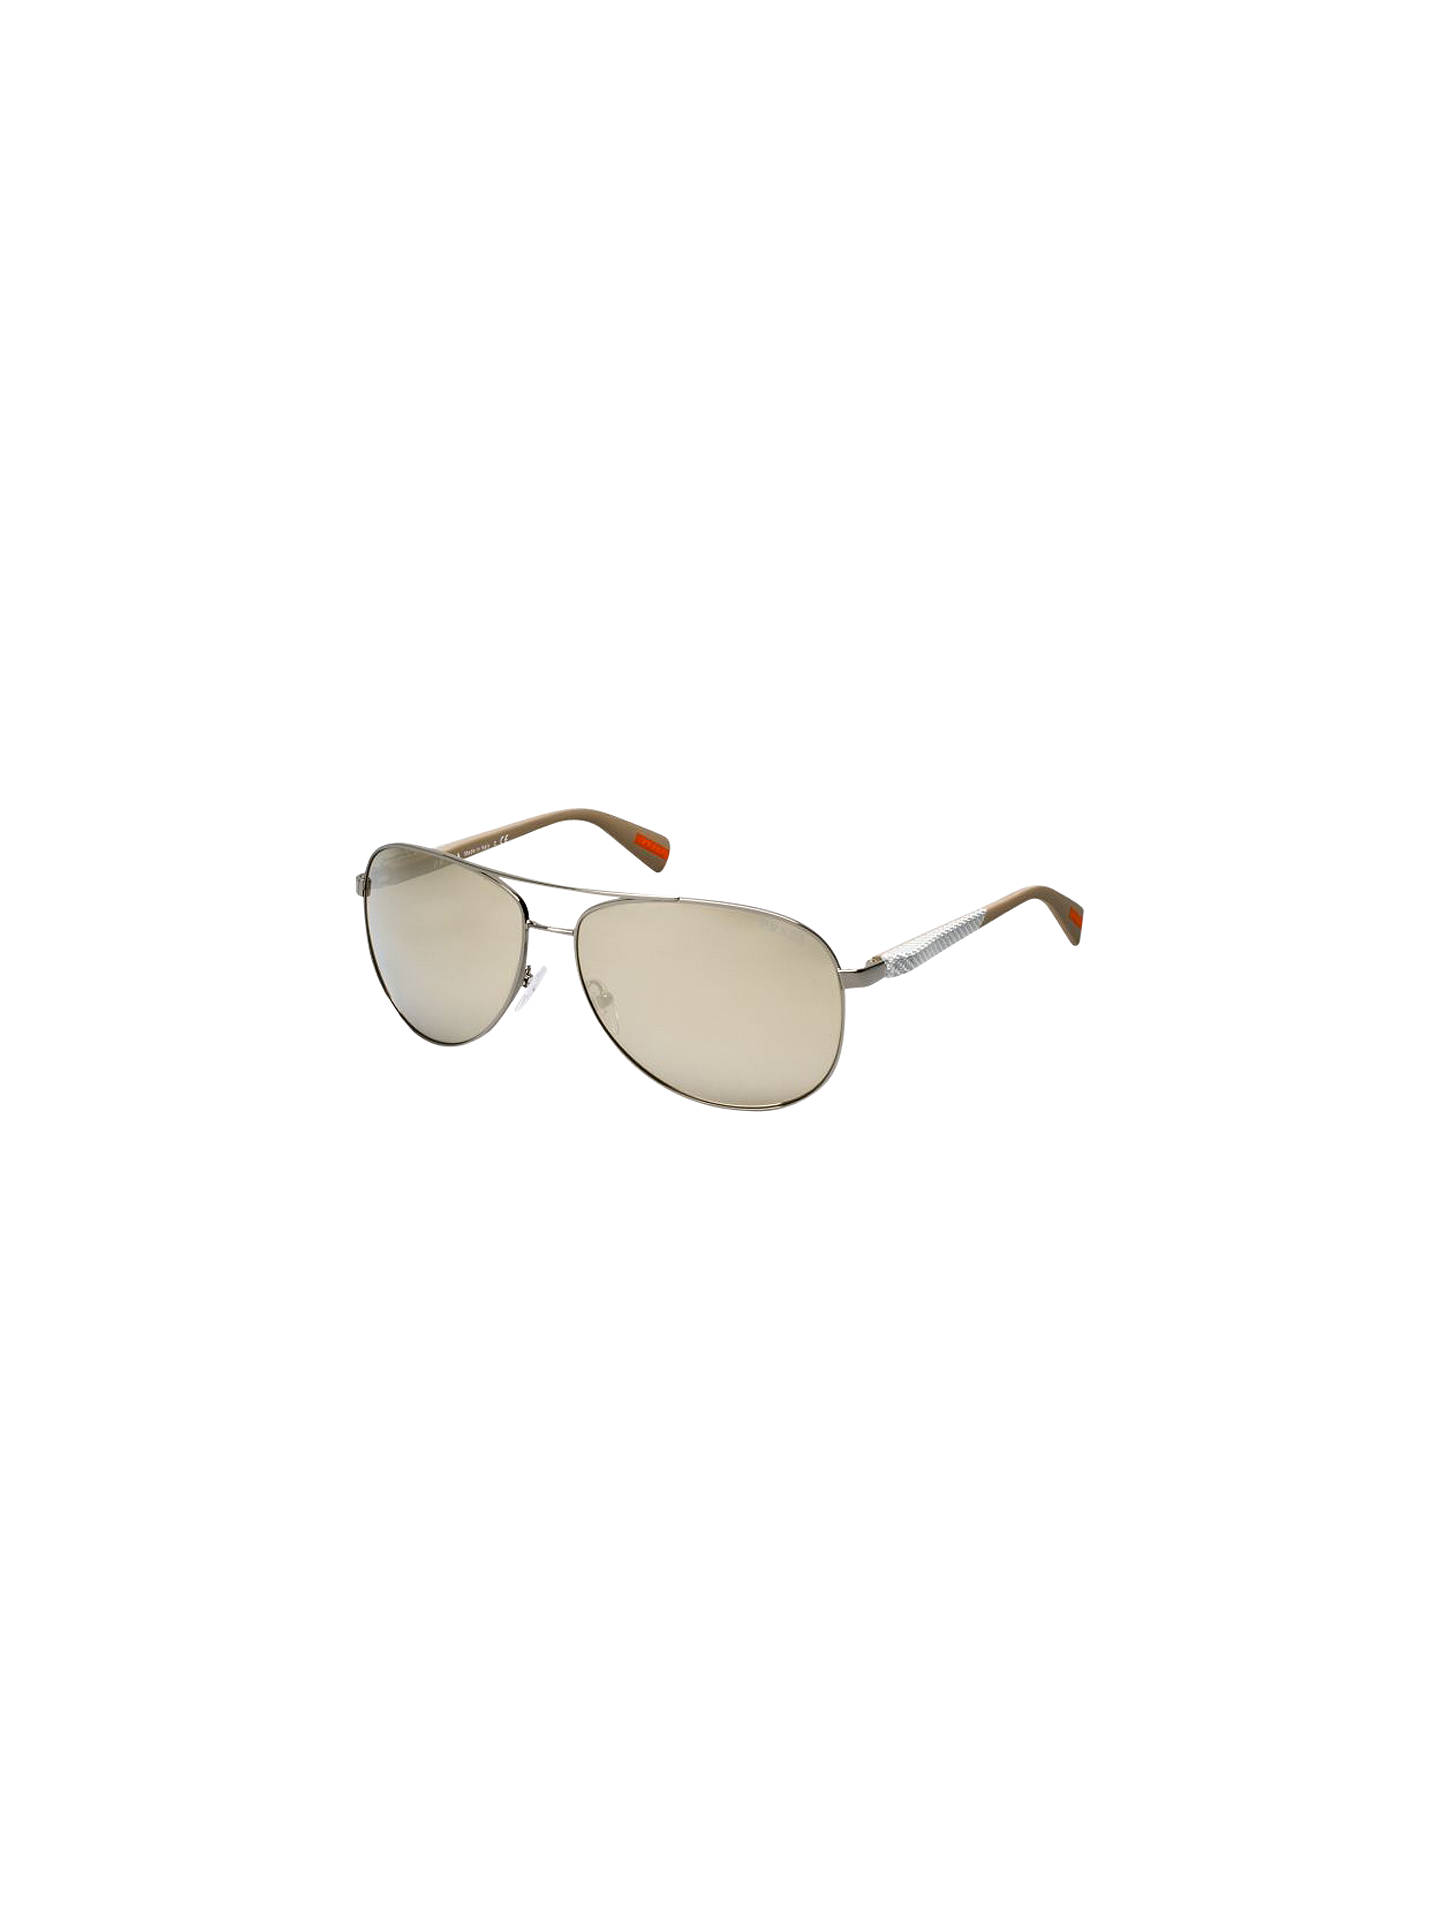 829a7b5aa2 Prada Linea Rossa PS510S Lifestyle Aviator Sunglasses at John Lewis ...